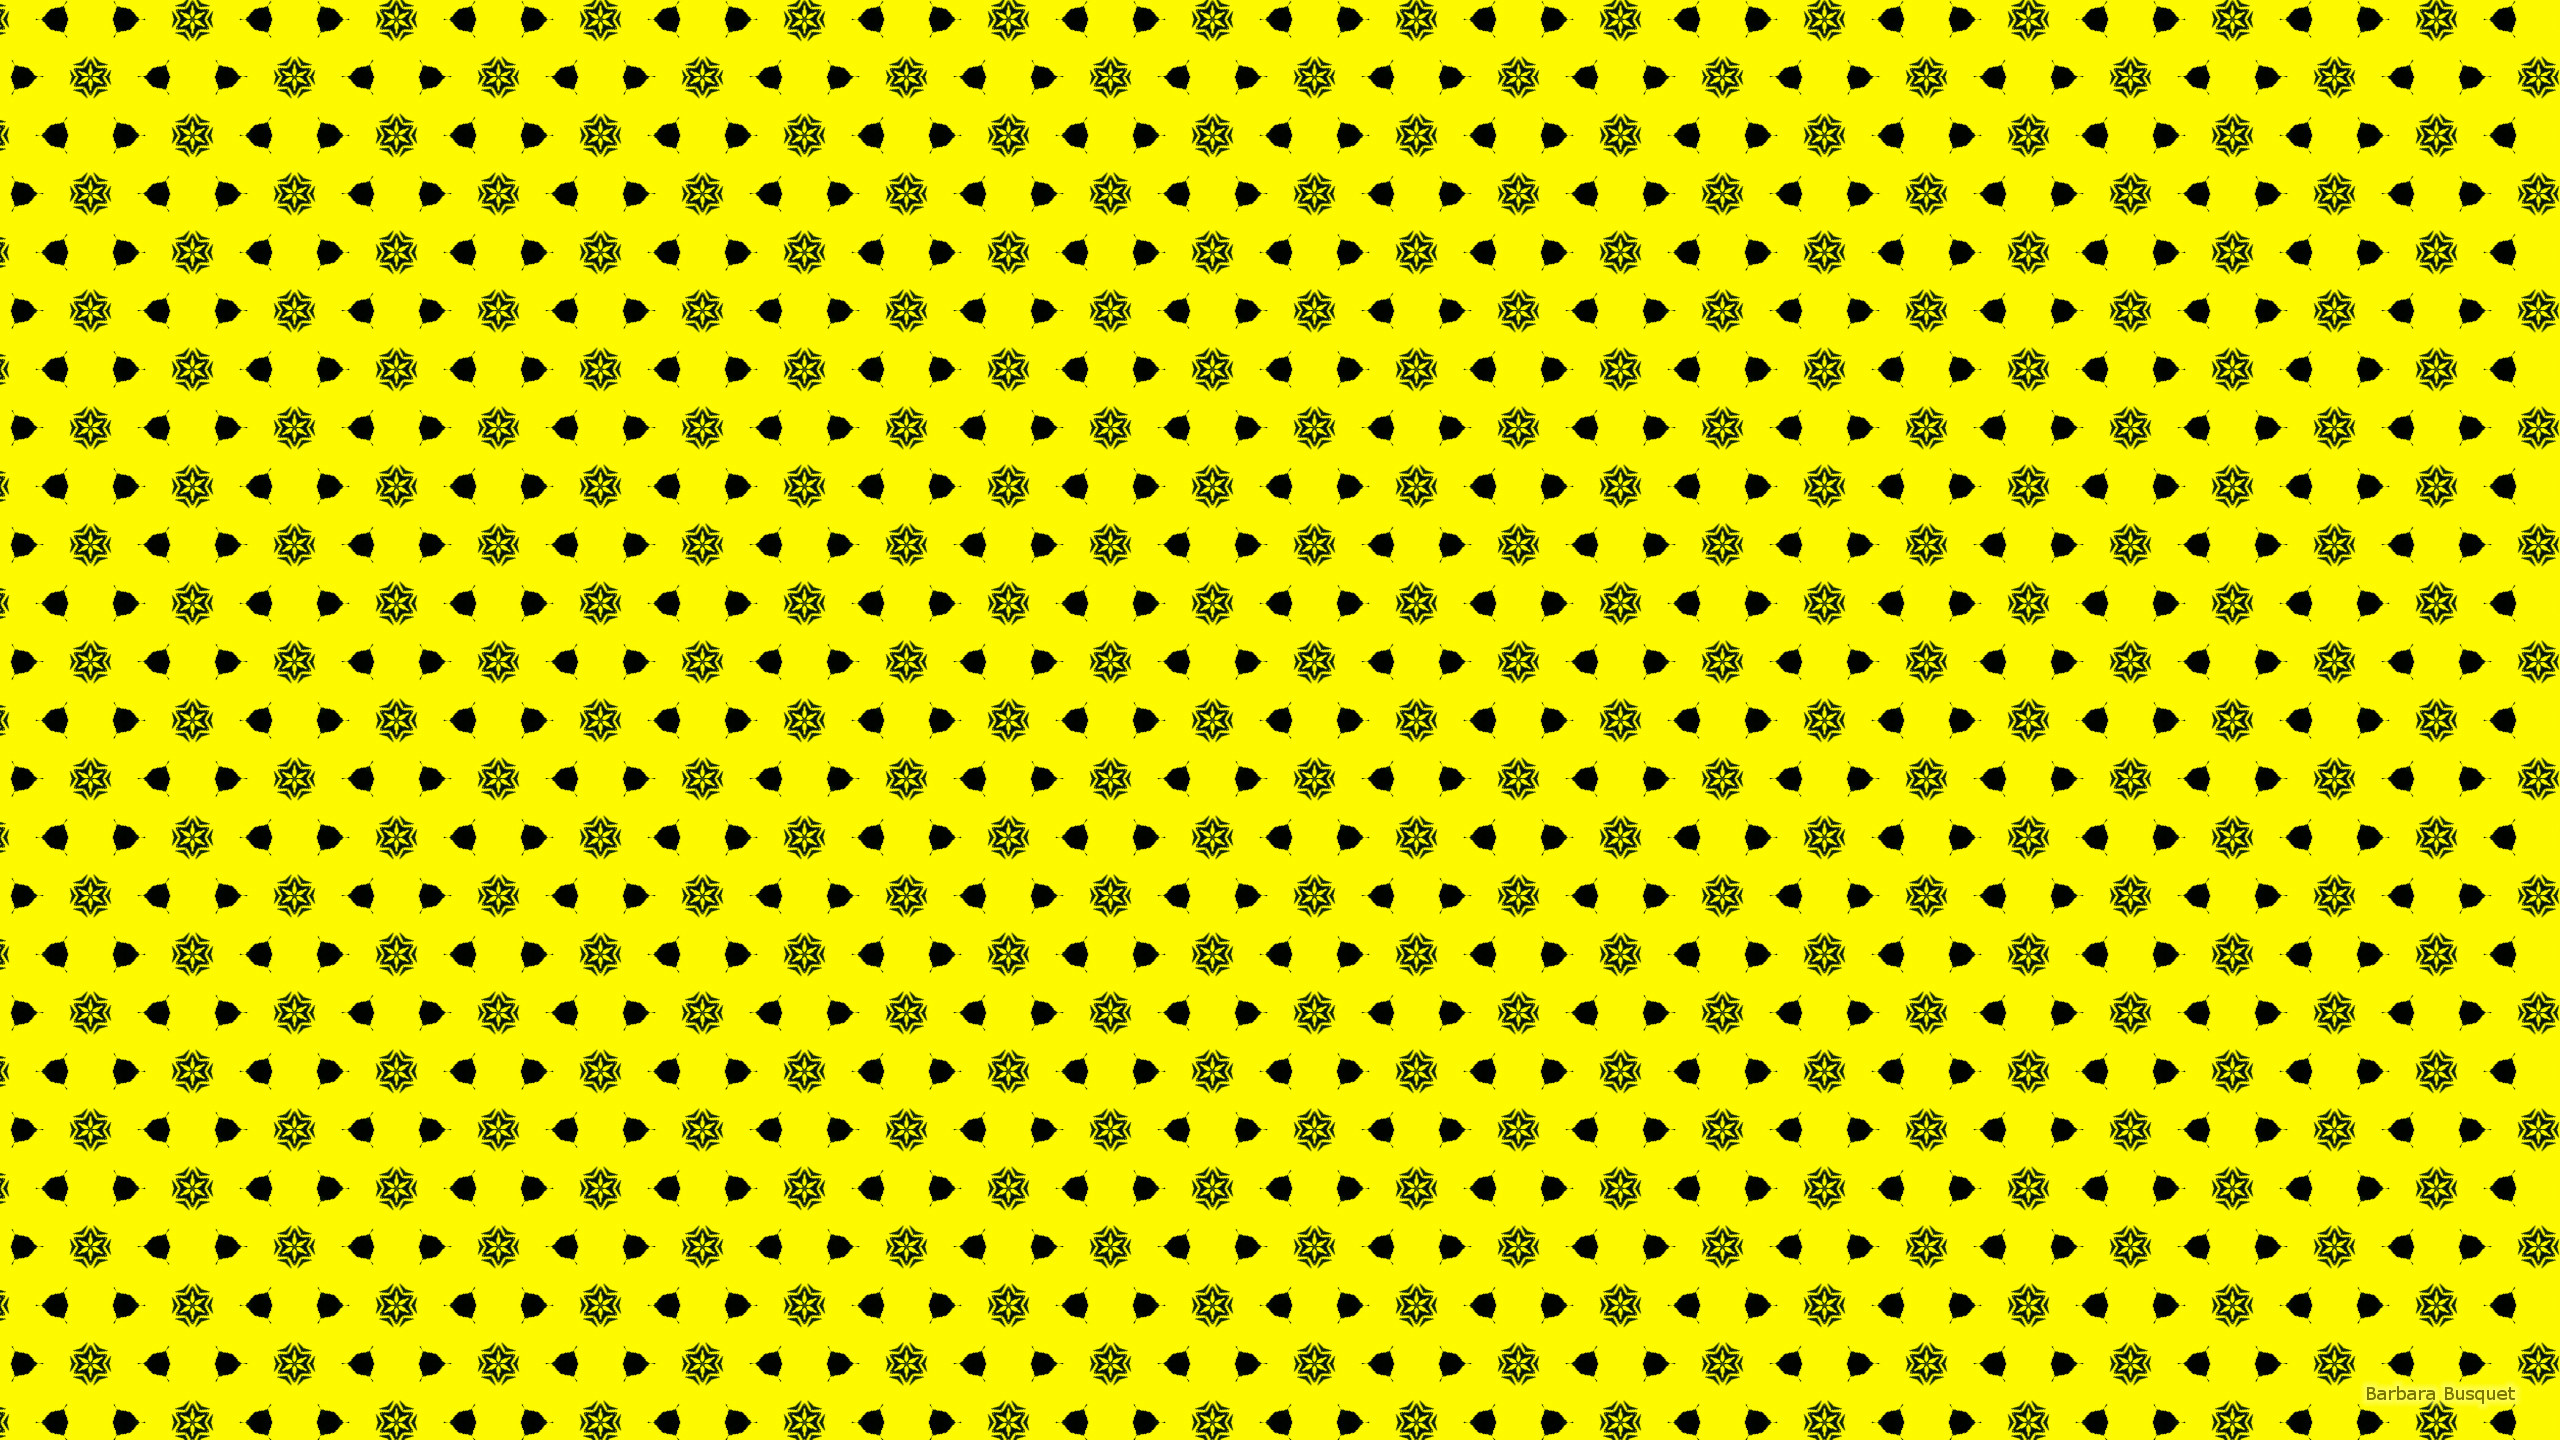 Yellow pattern backgrounds | Barbara's HD Wallpapers